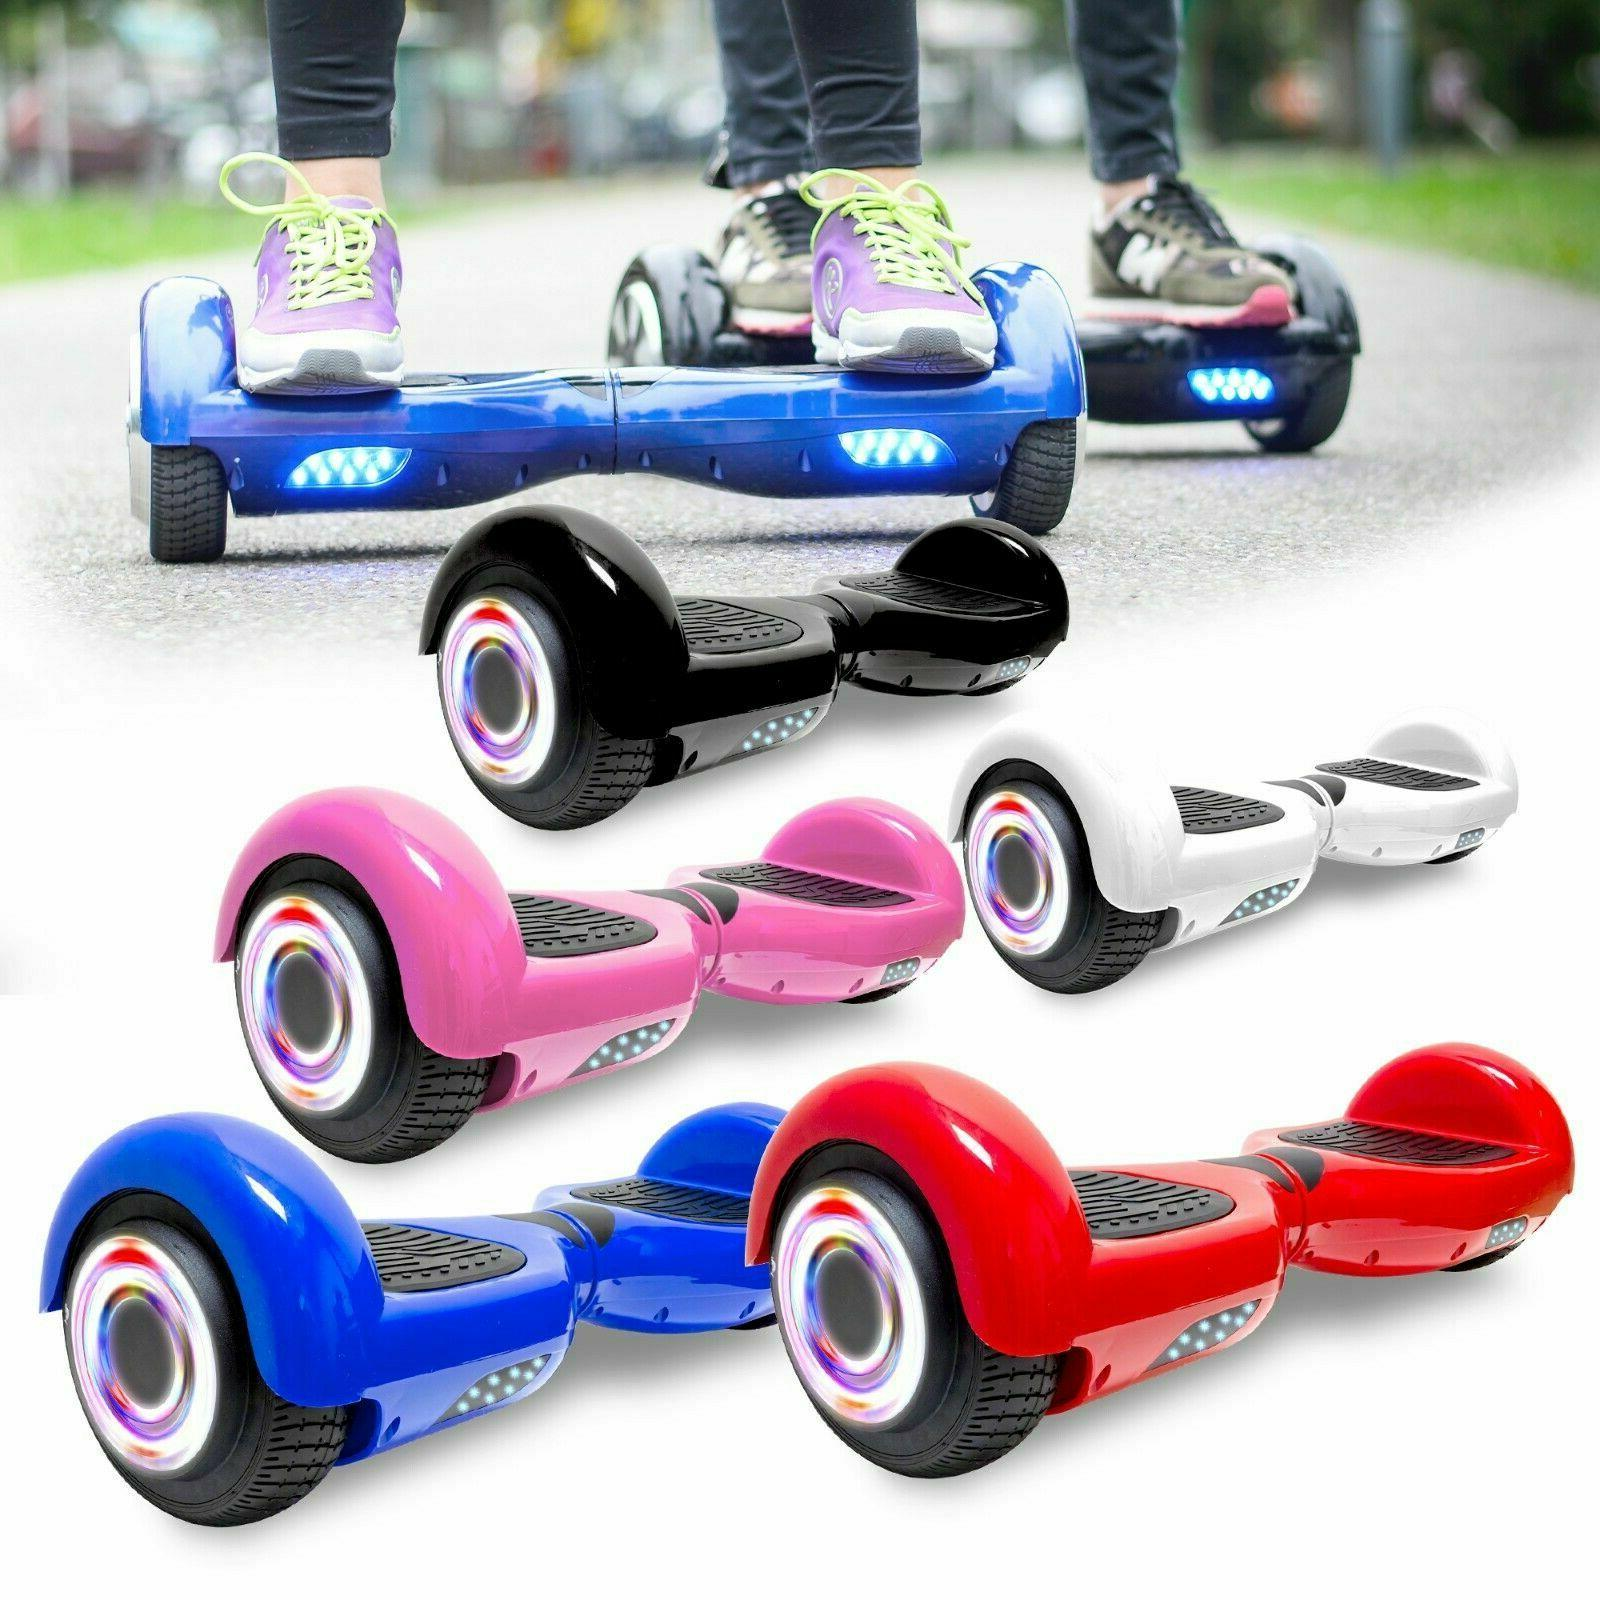 chrome series hoverboard electric smart self balancing